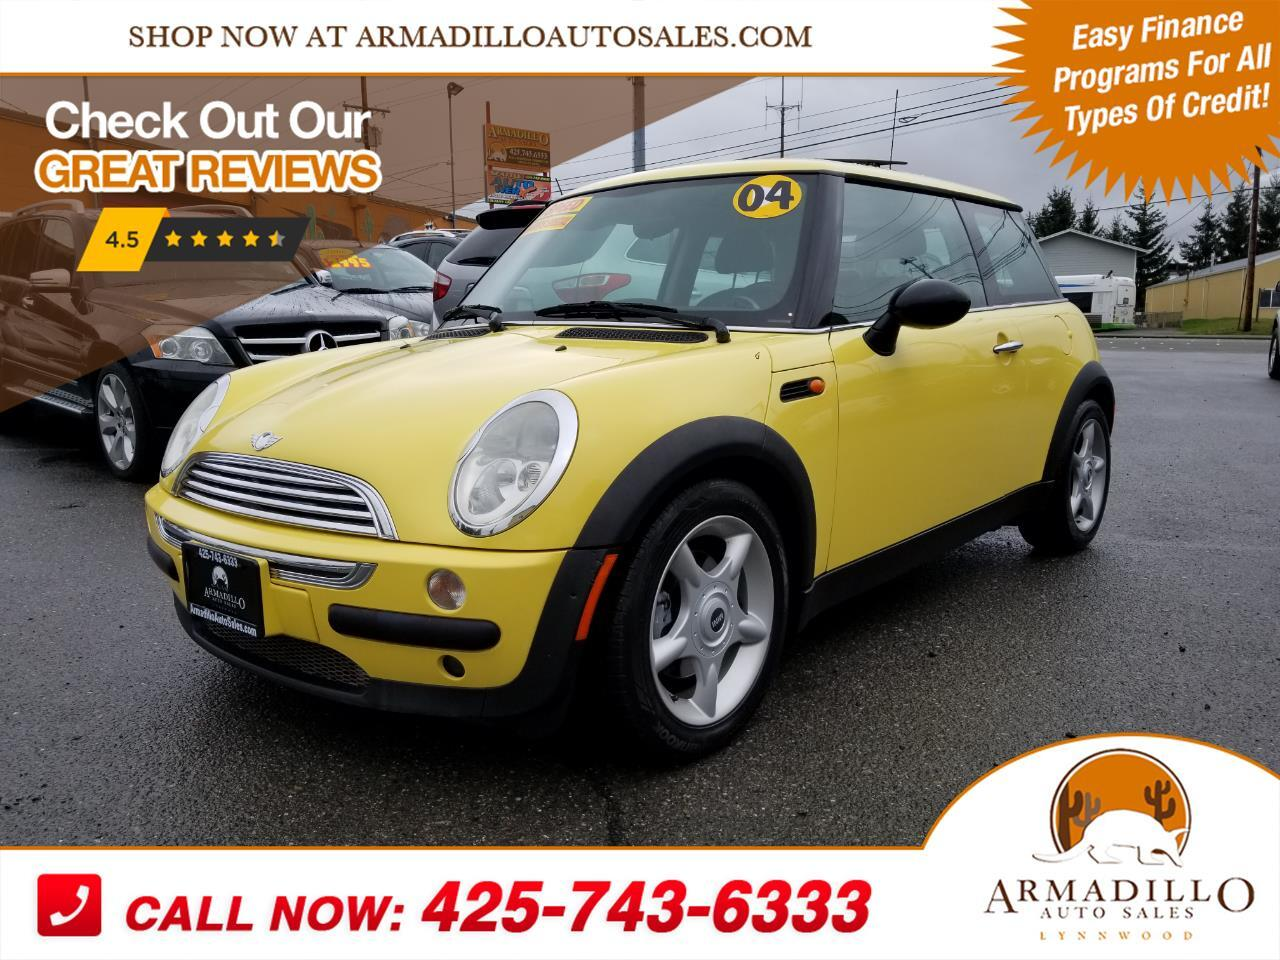 2004 MINI Cooper Hatchback